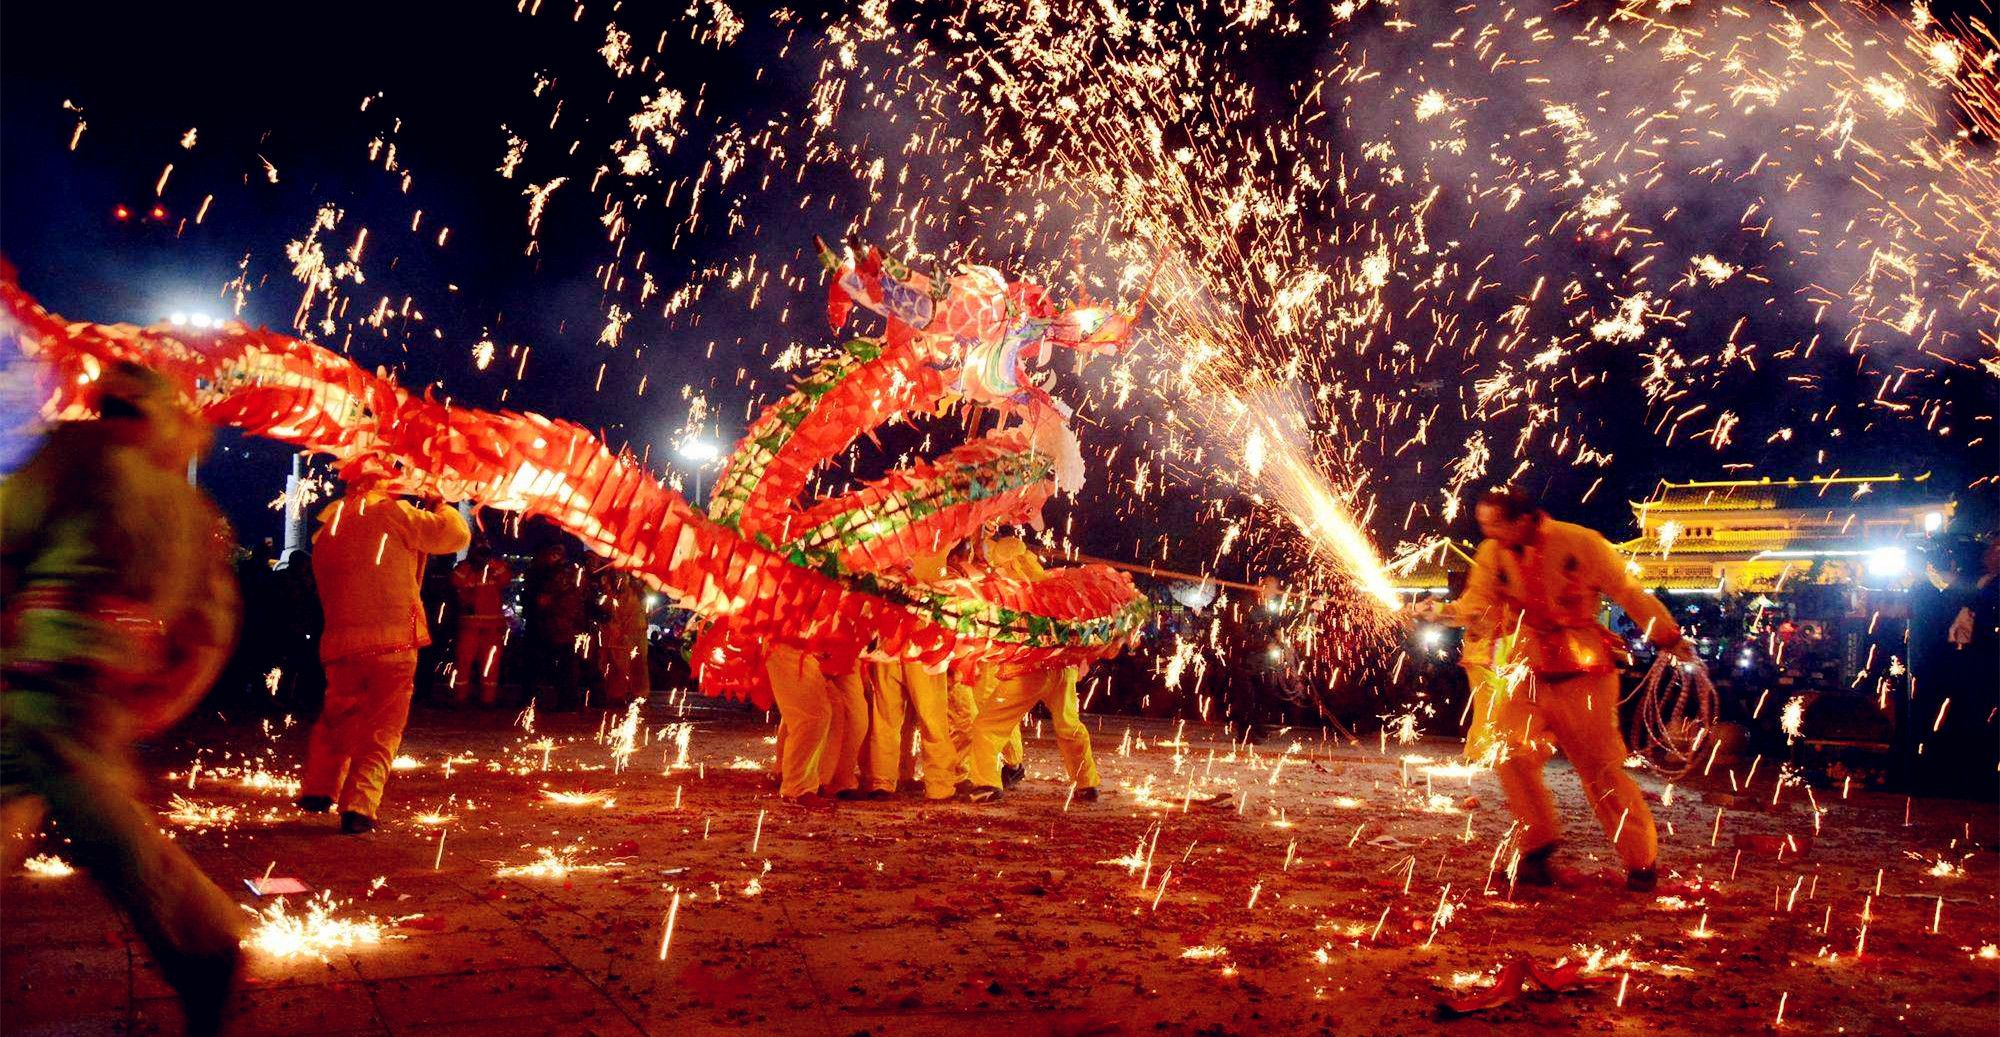 Chinese New Year Dragon Dance - cchatty